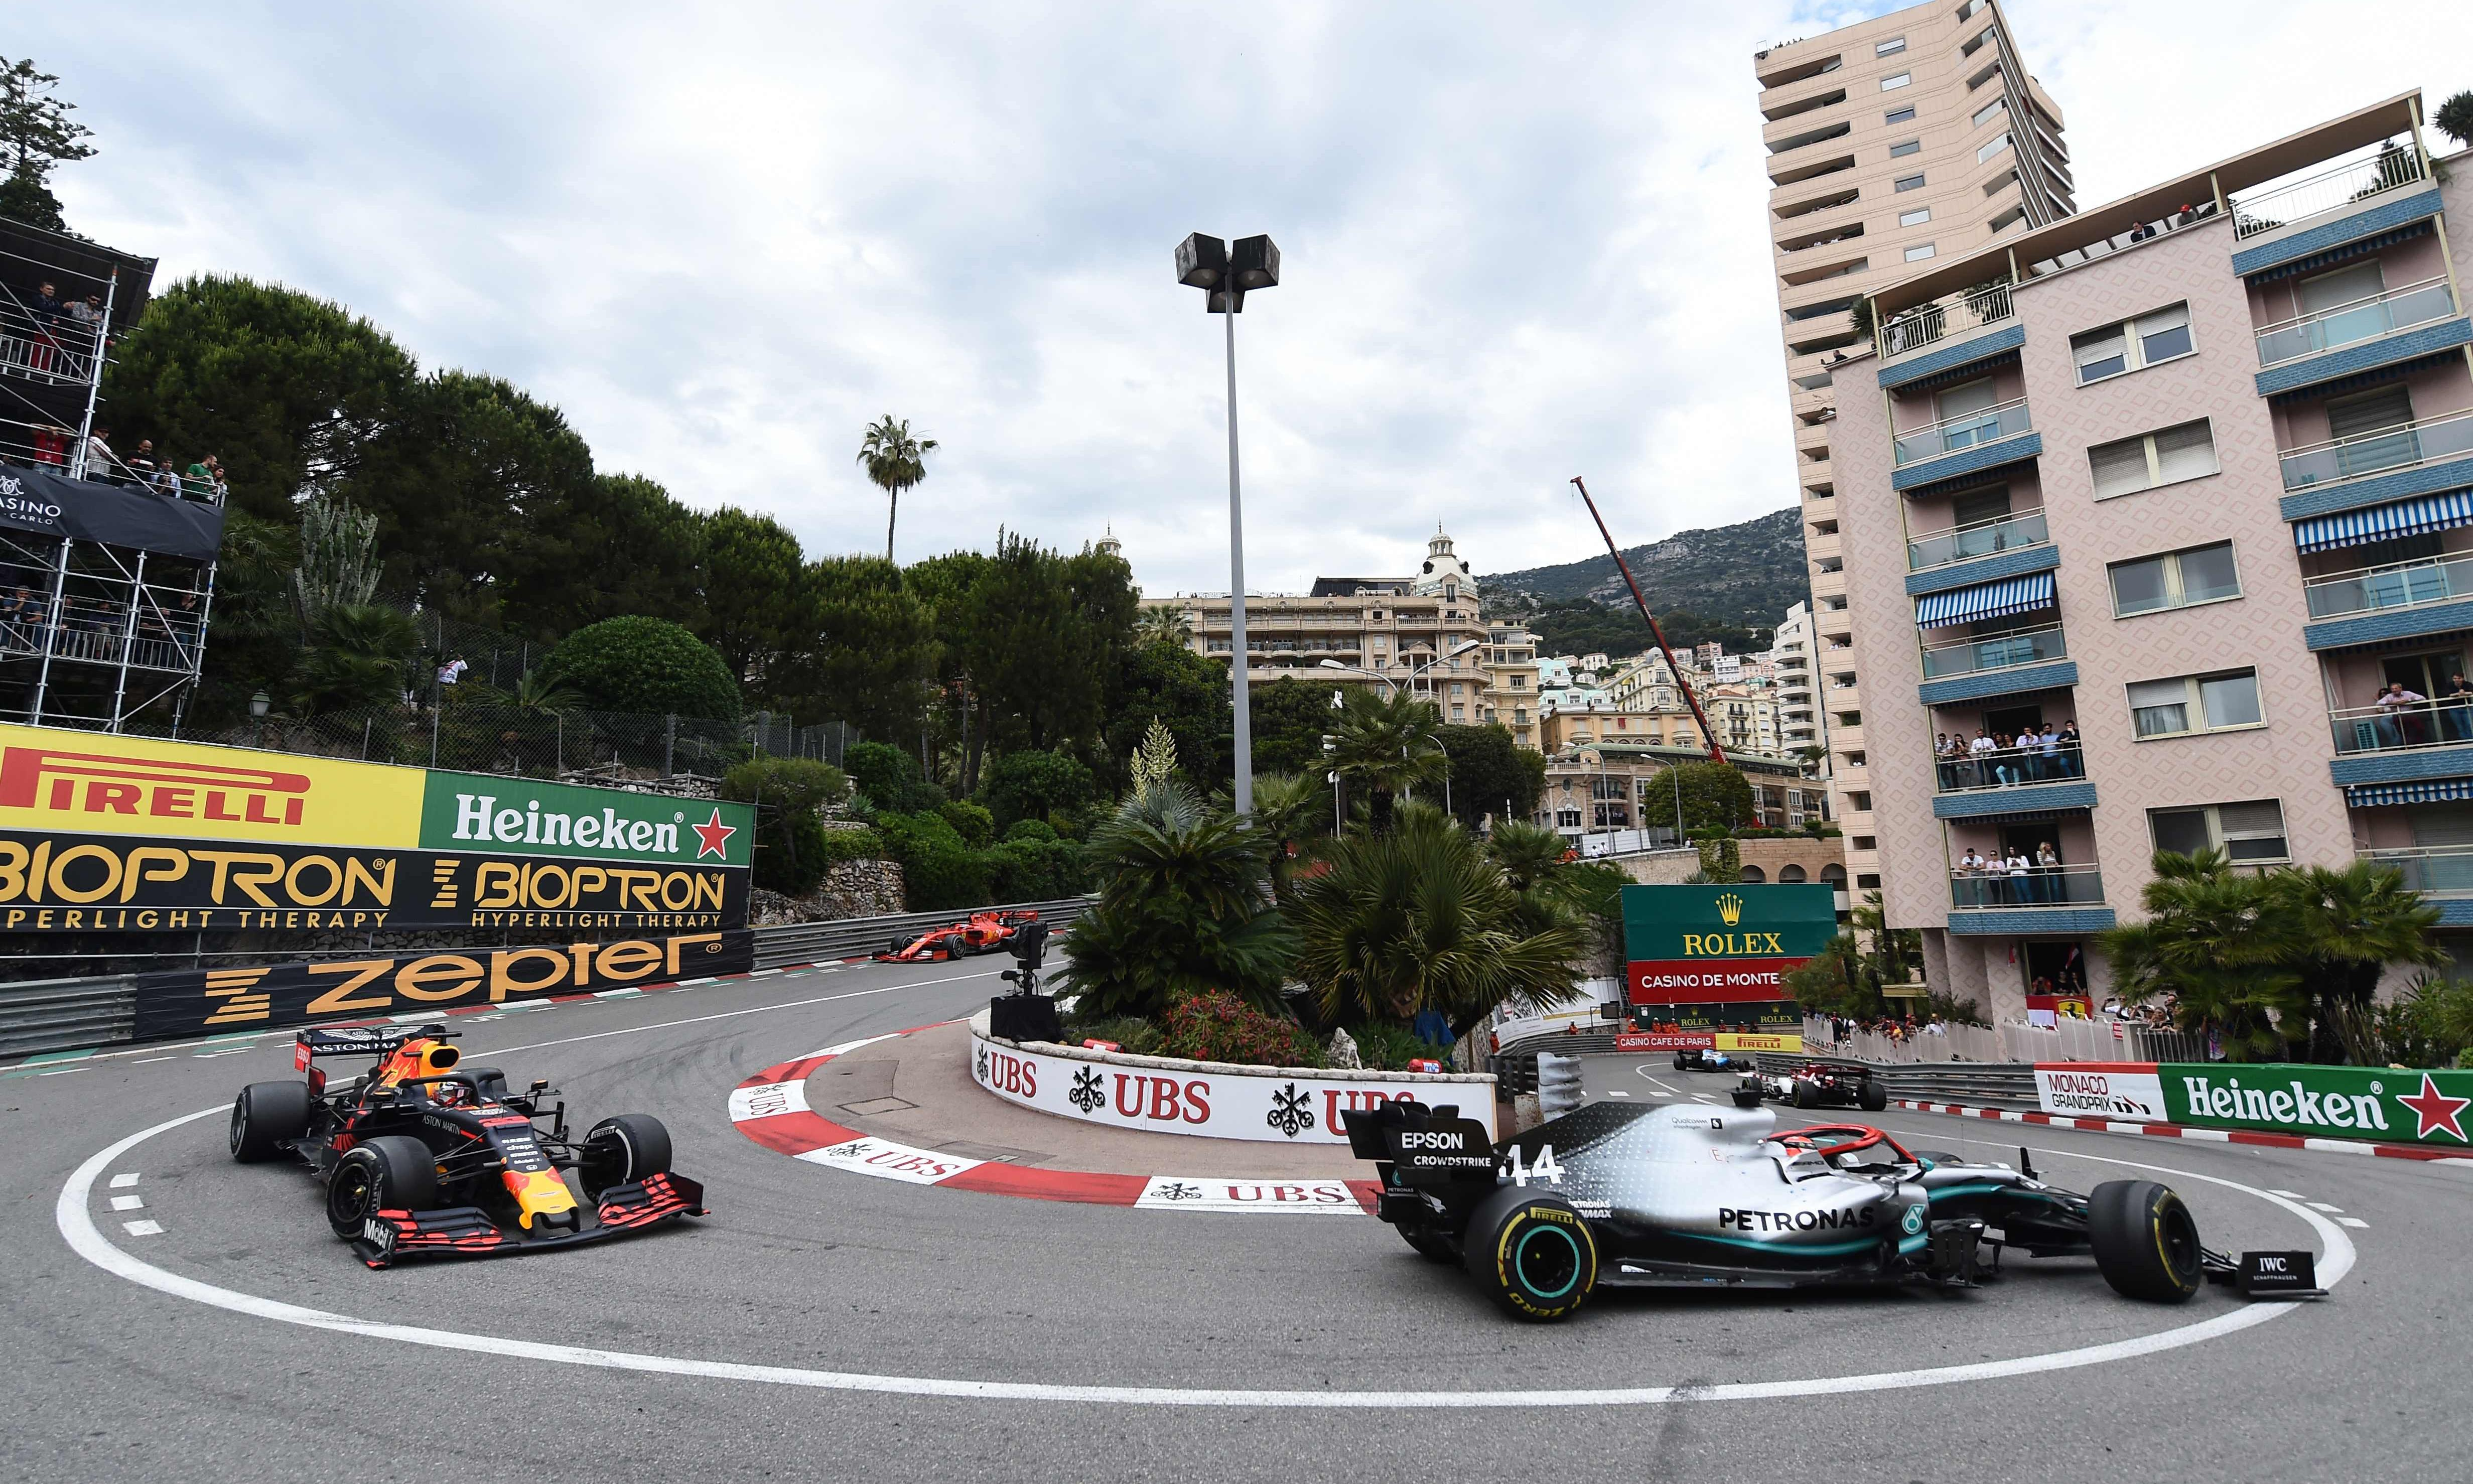 Lewis Hamilton holds Max Verstappen at bay to win Monaco Grand Prix